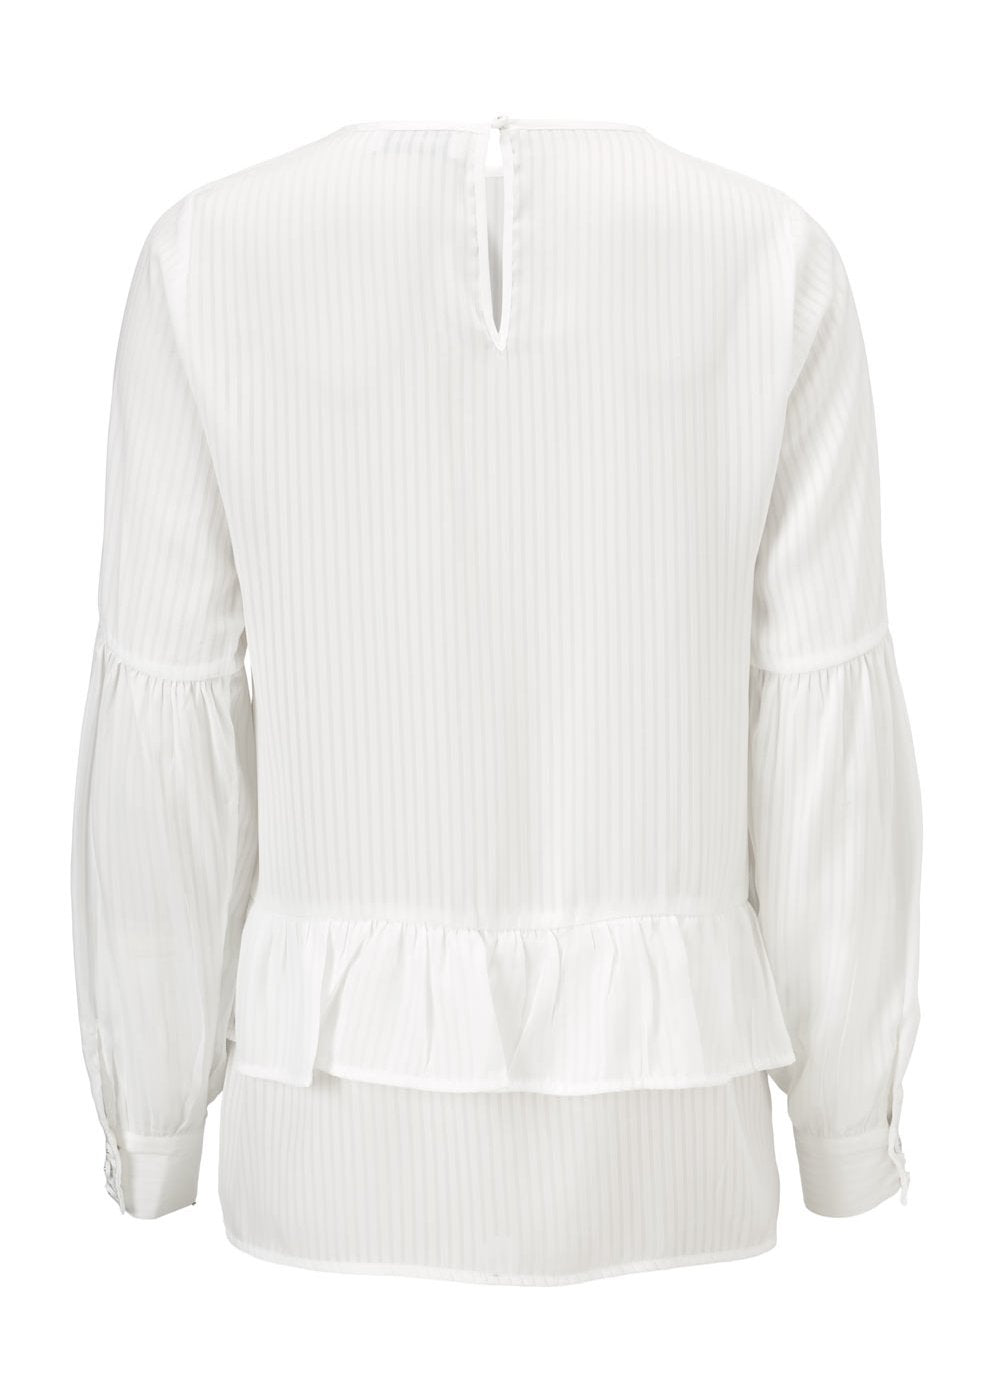 Modström Rich Top Off White - Mojo Independent Store